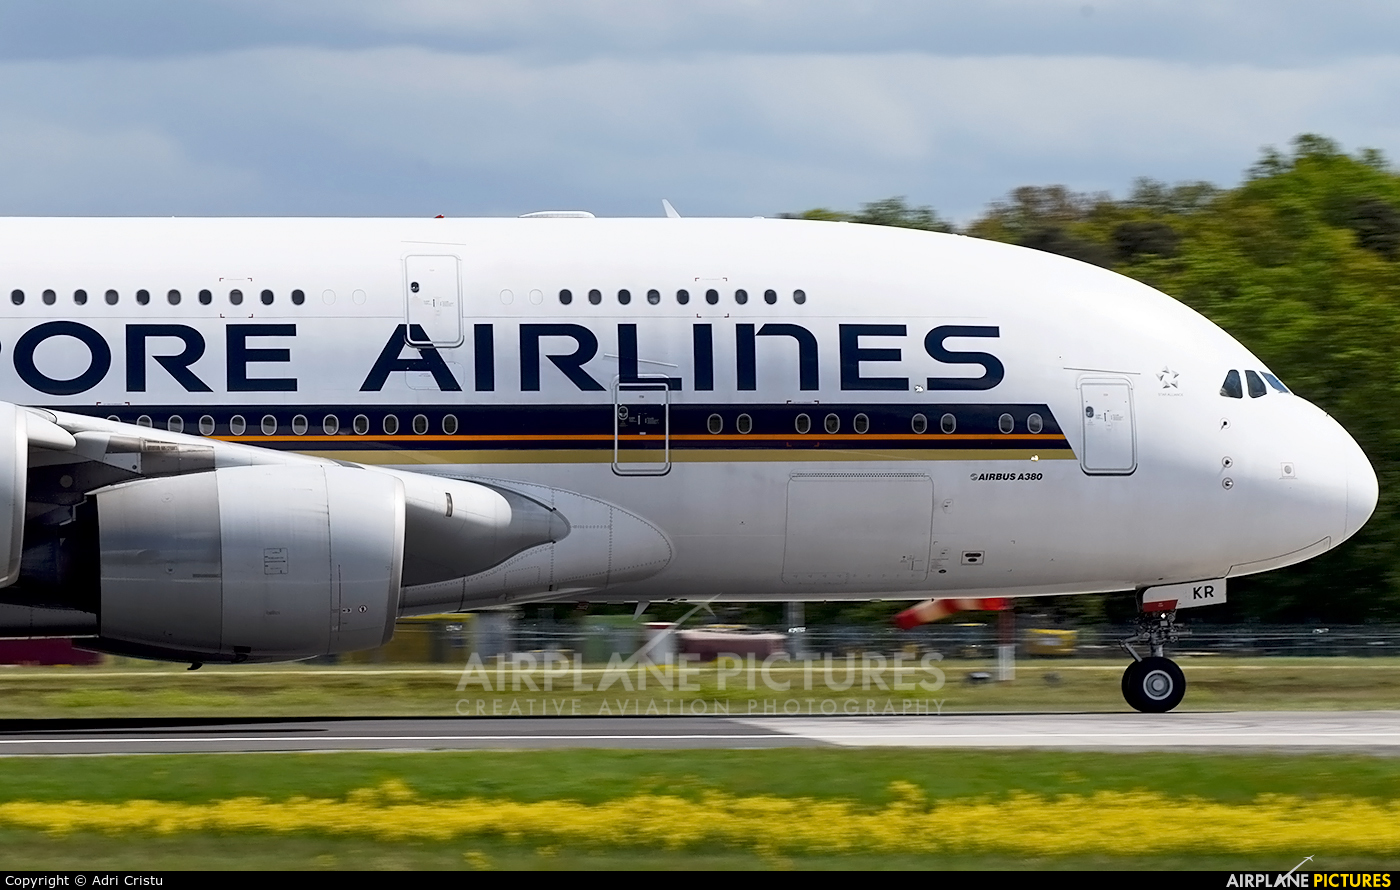 Singapore Airlines 9V-SKR aircraft at Frankfurt